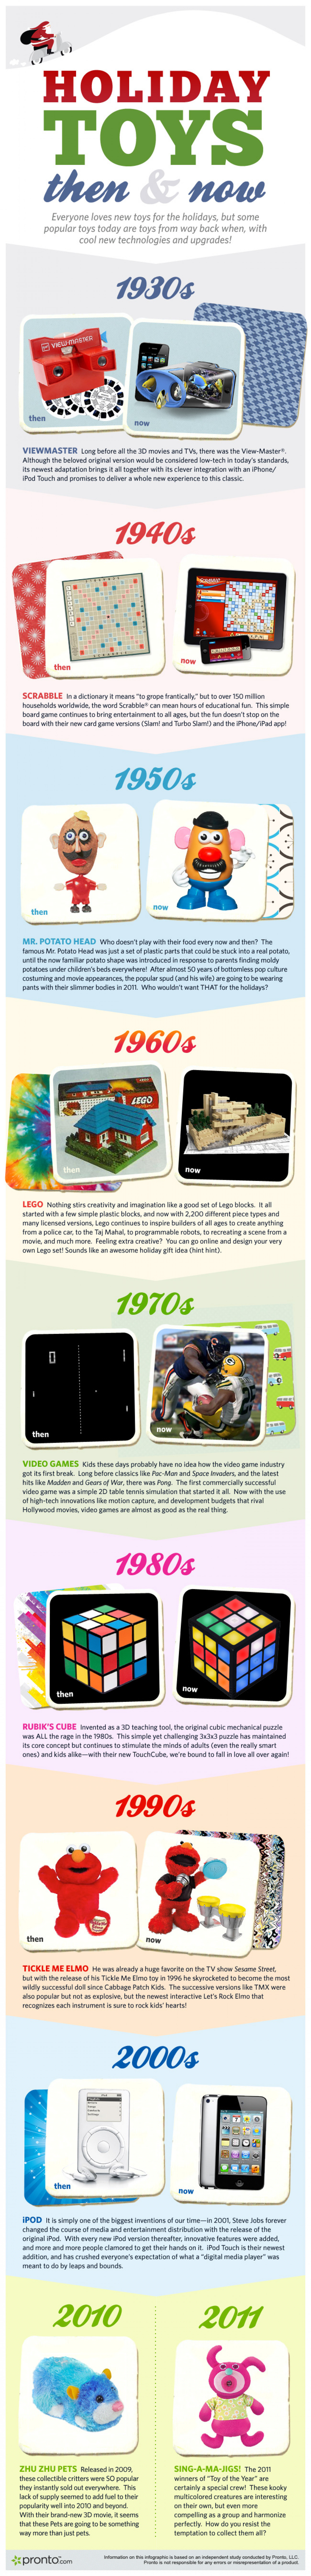 Holiday Toys: Then and Now Infographic